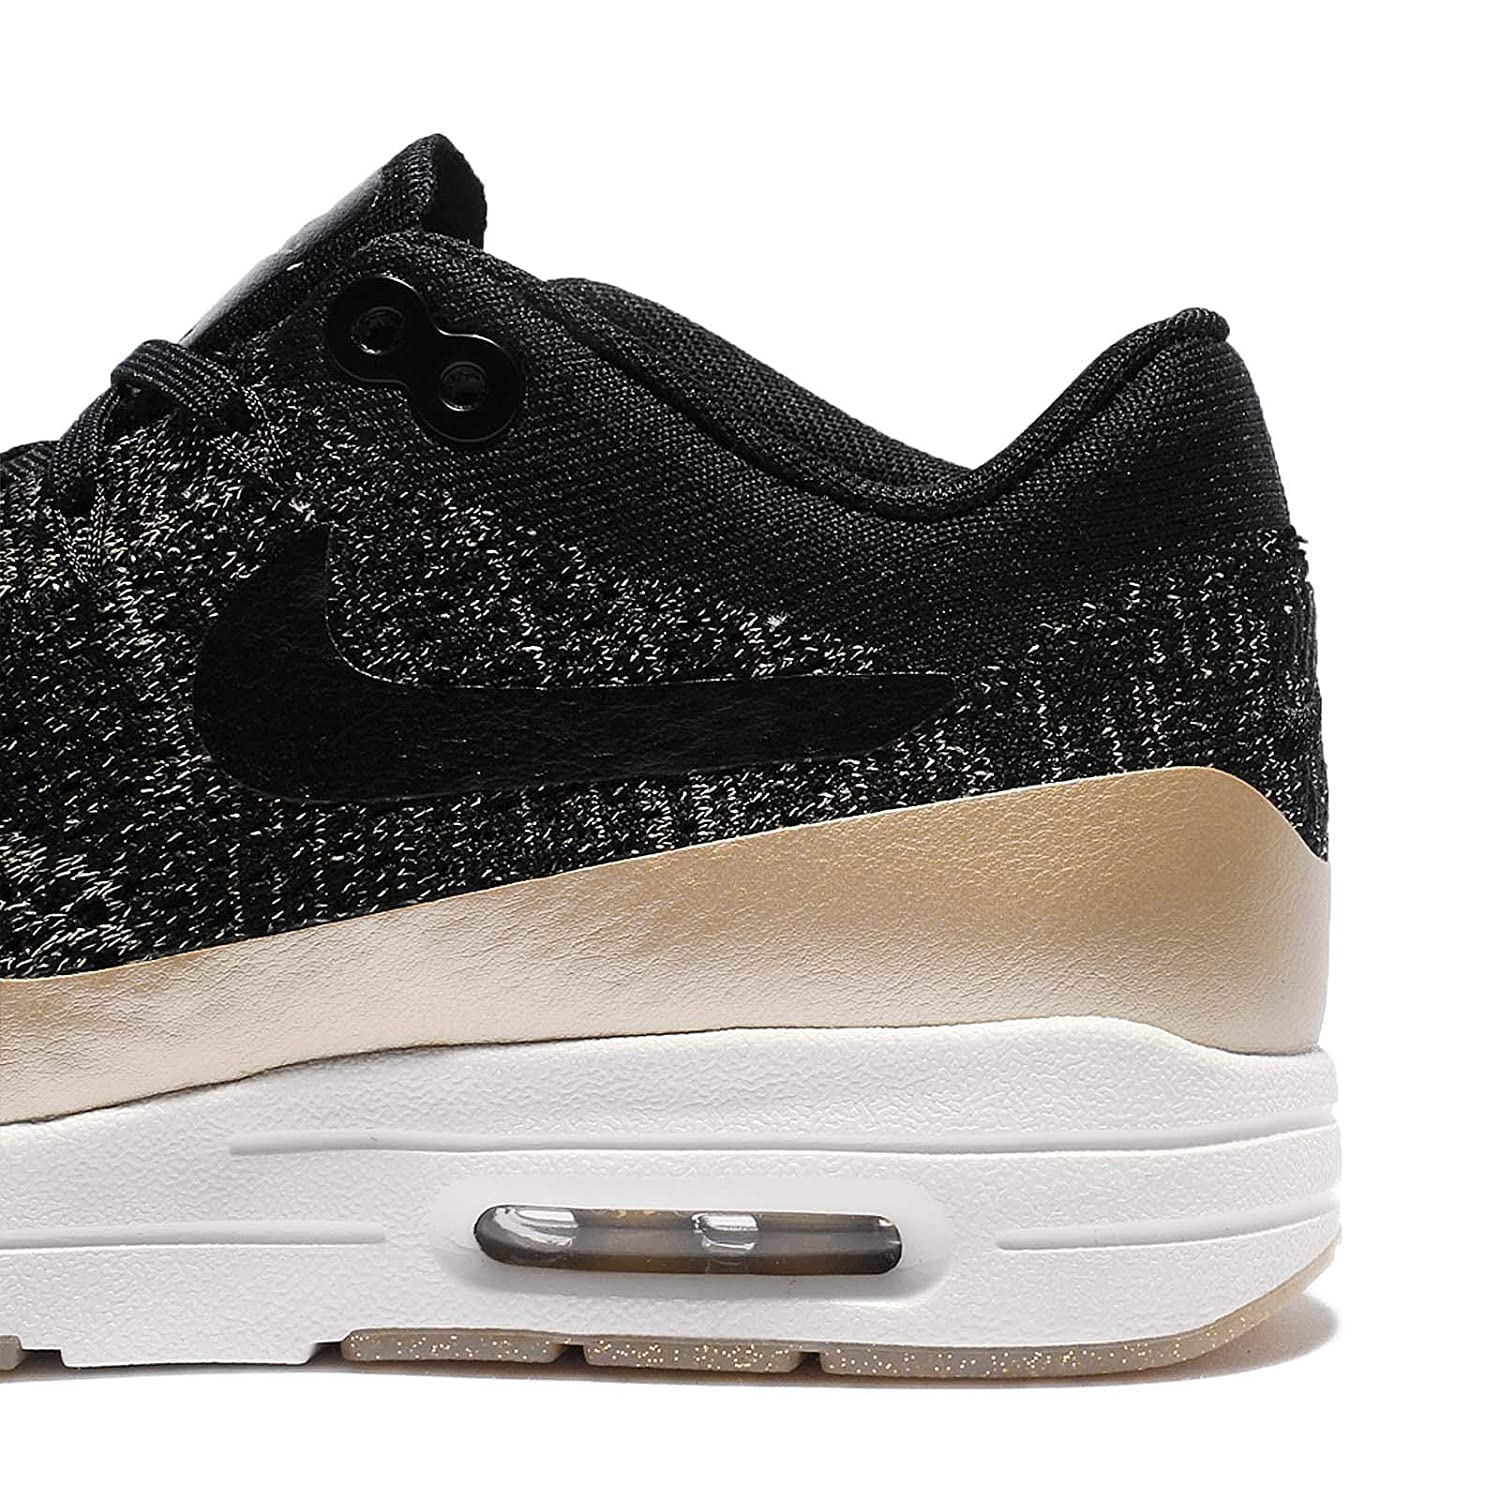 Details about Nike Air Max 1 Ultra 2.0 FK Flyknit Womens Metallic Black Gold 881195 001